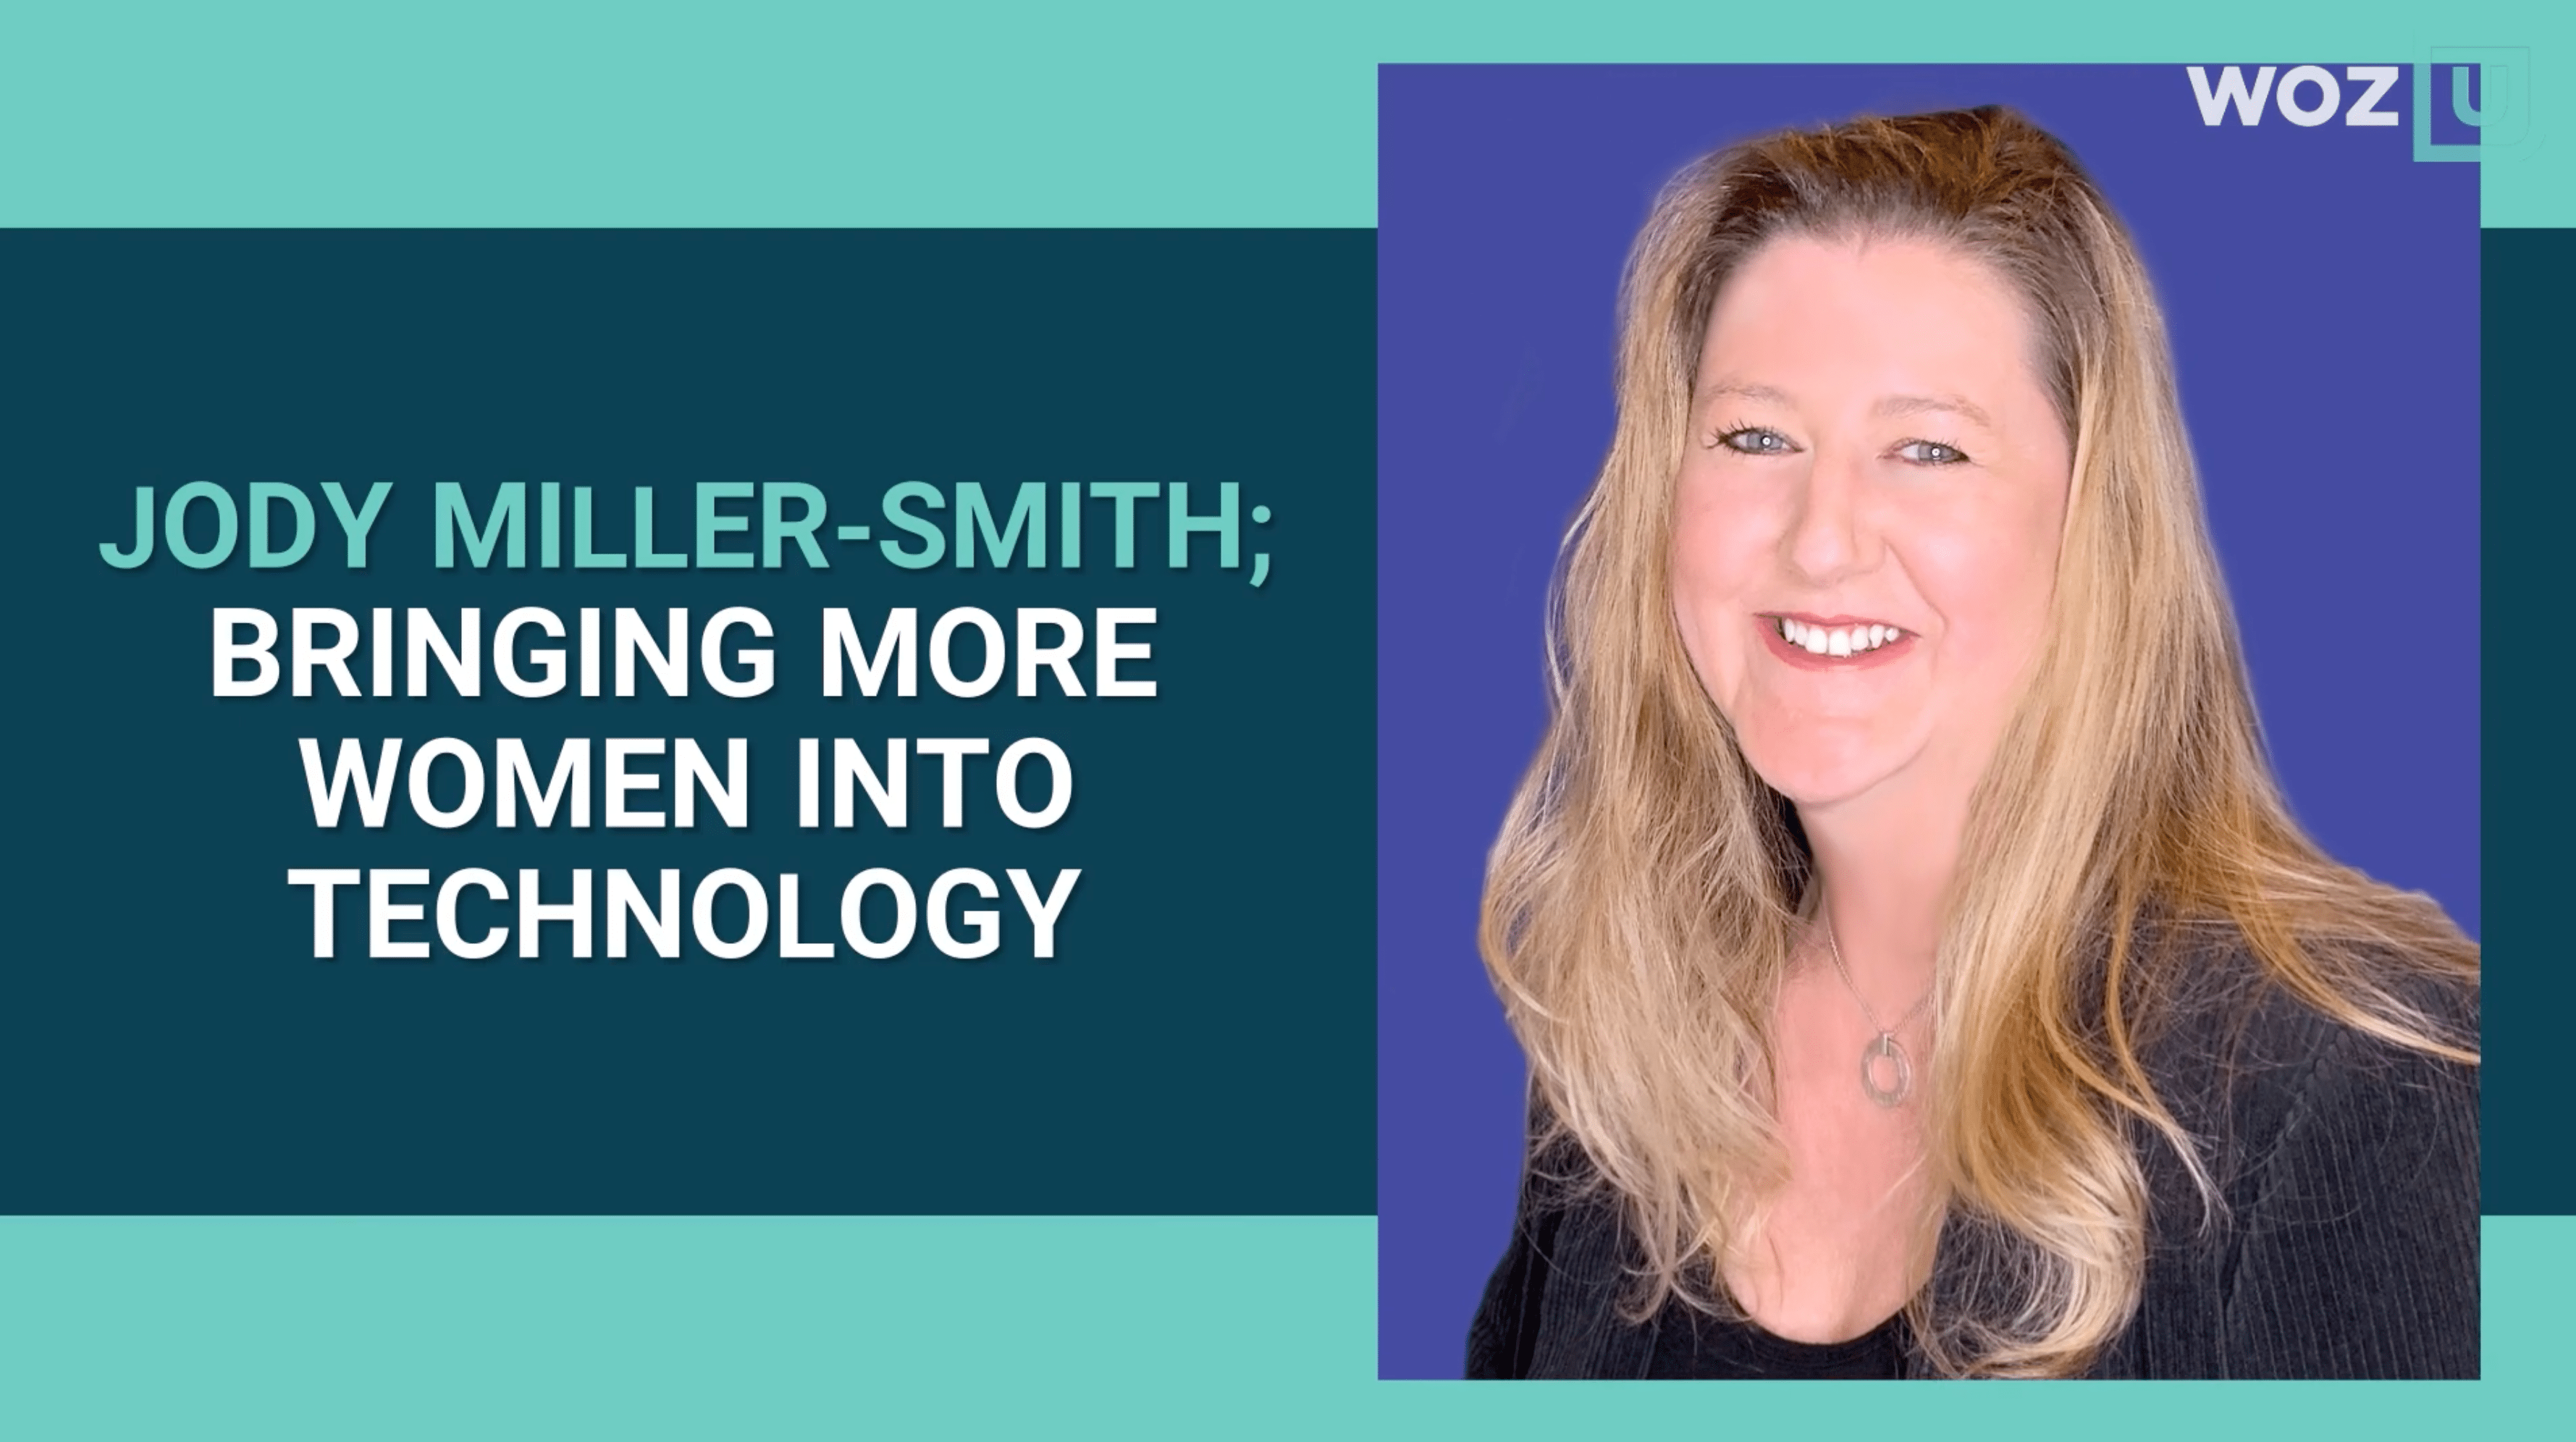 Jody Miller-Smith: Bringing More Women Into Technology